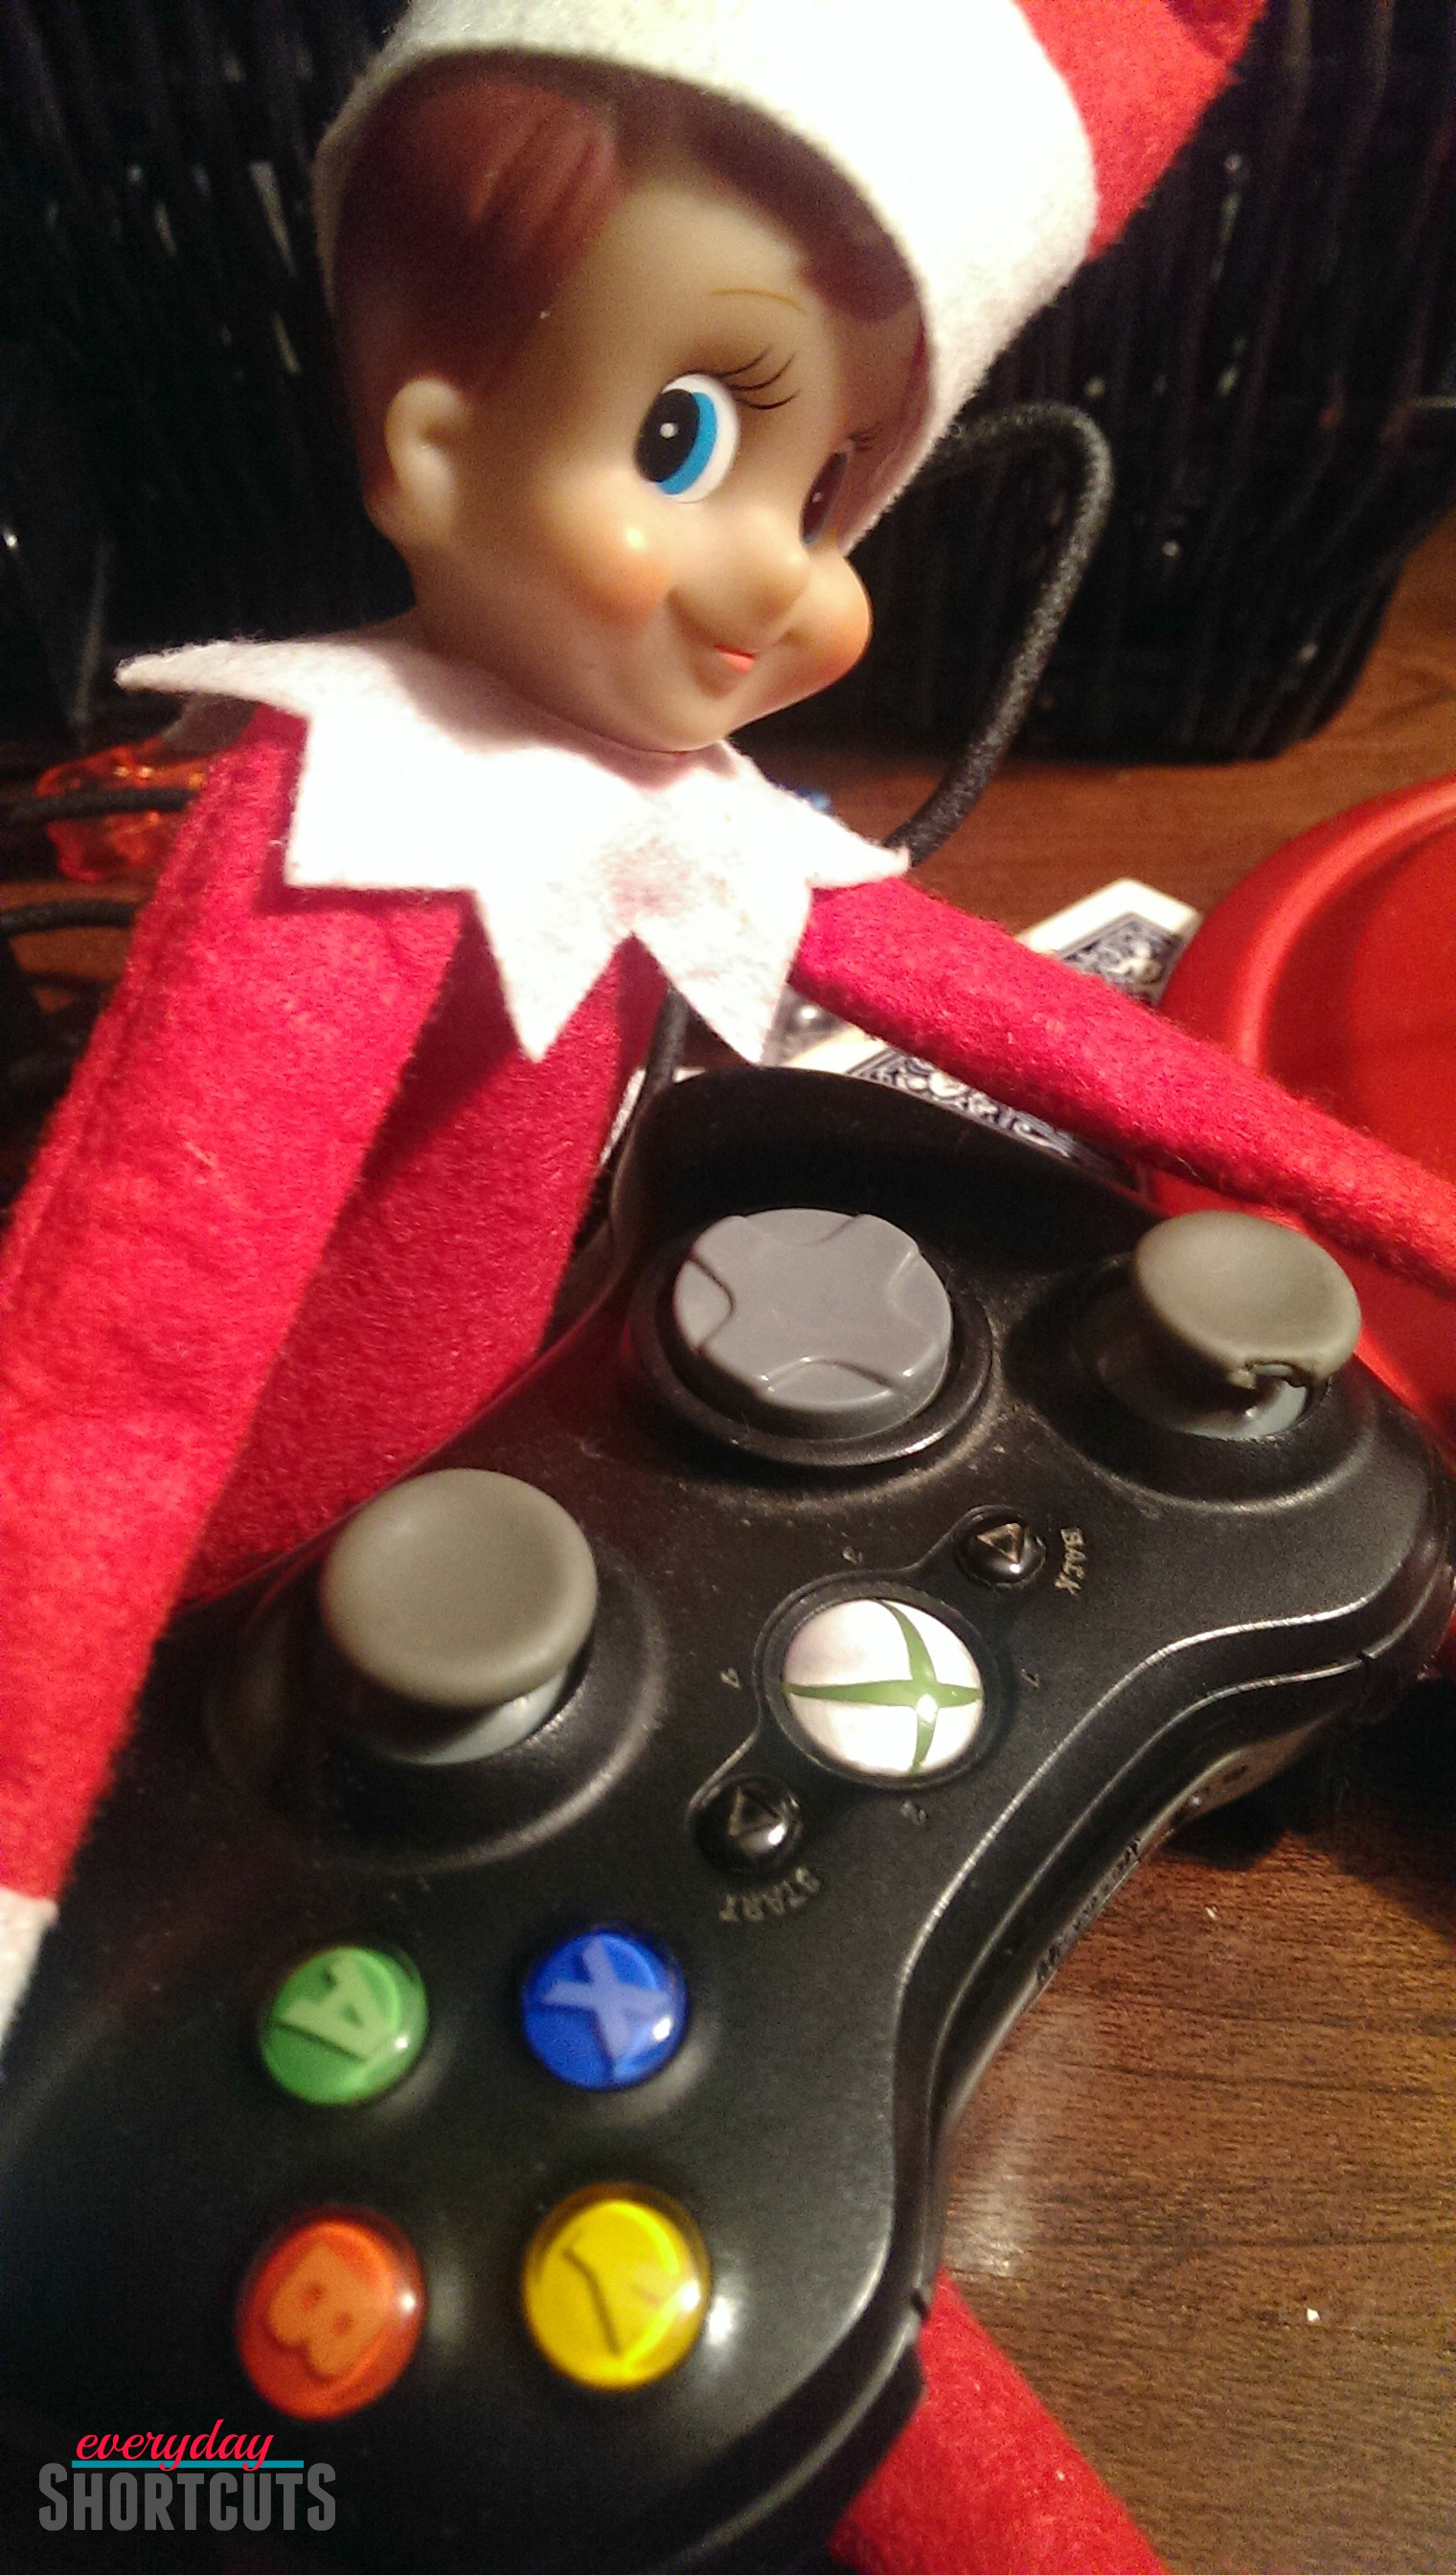 elf on the shelf with xbox controller